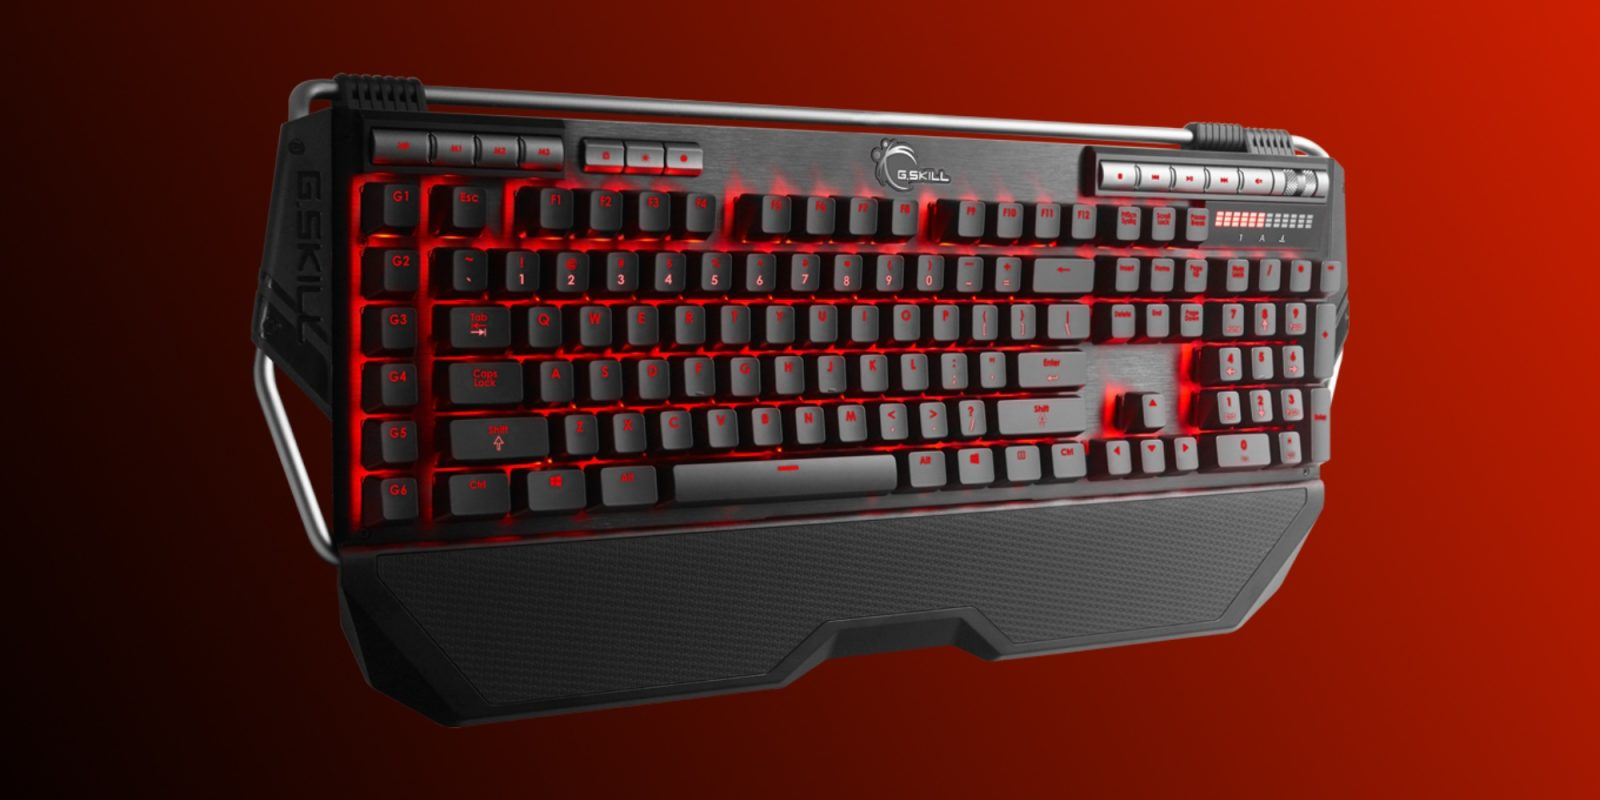 Level up your game with 24% off G.SKILL's RIPJAWS Mechanical Keyboard at $65